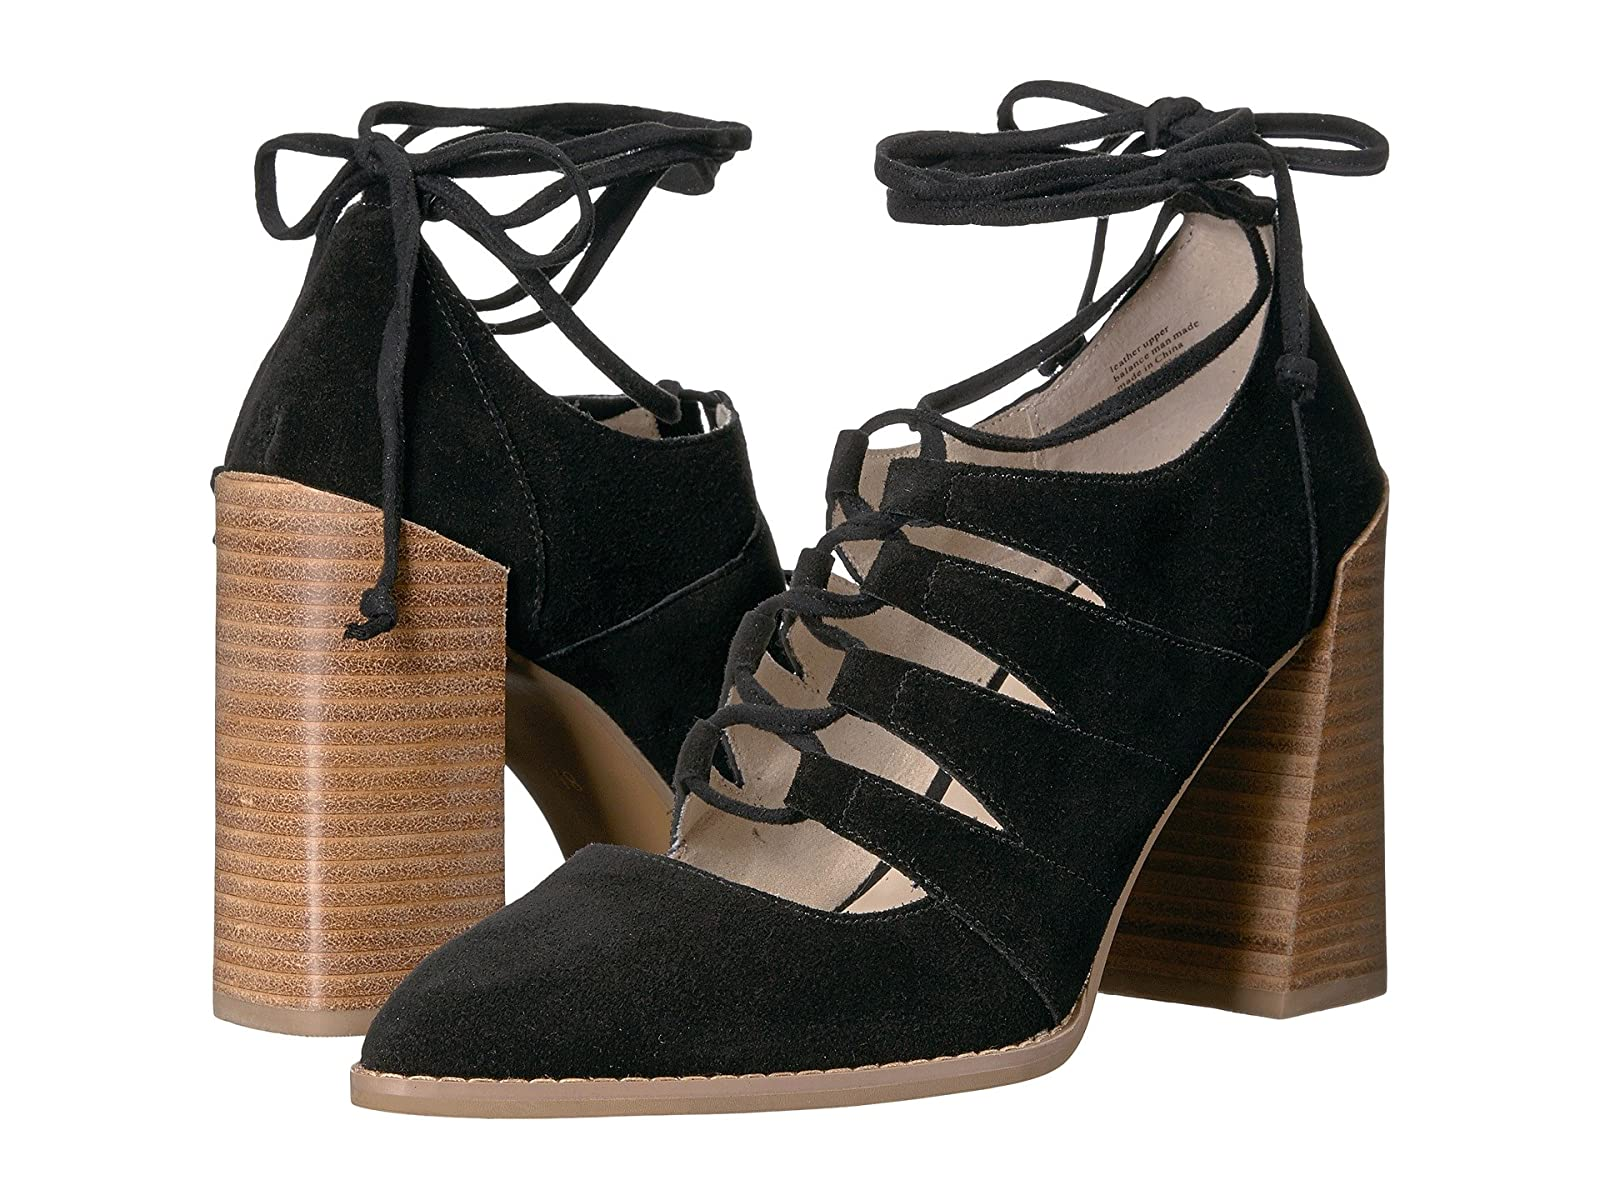 Seychelles ConditionCheap and distinctive eye-catching shoes